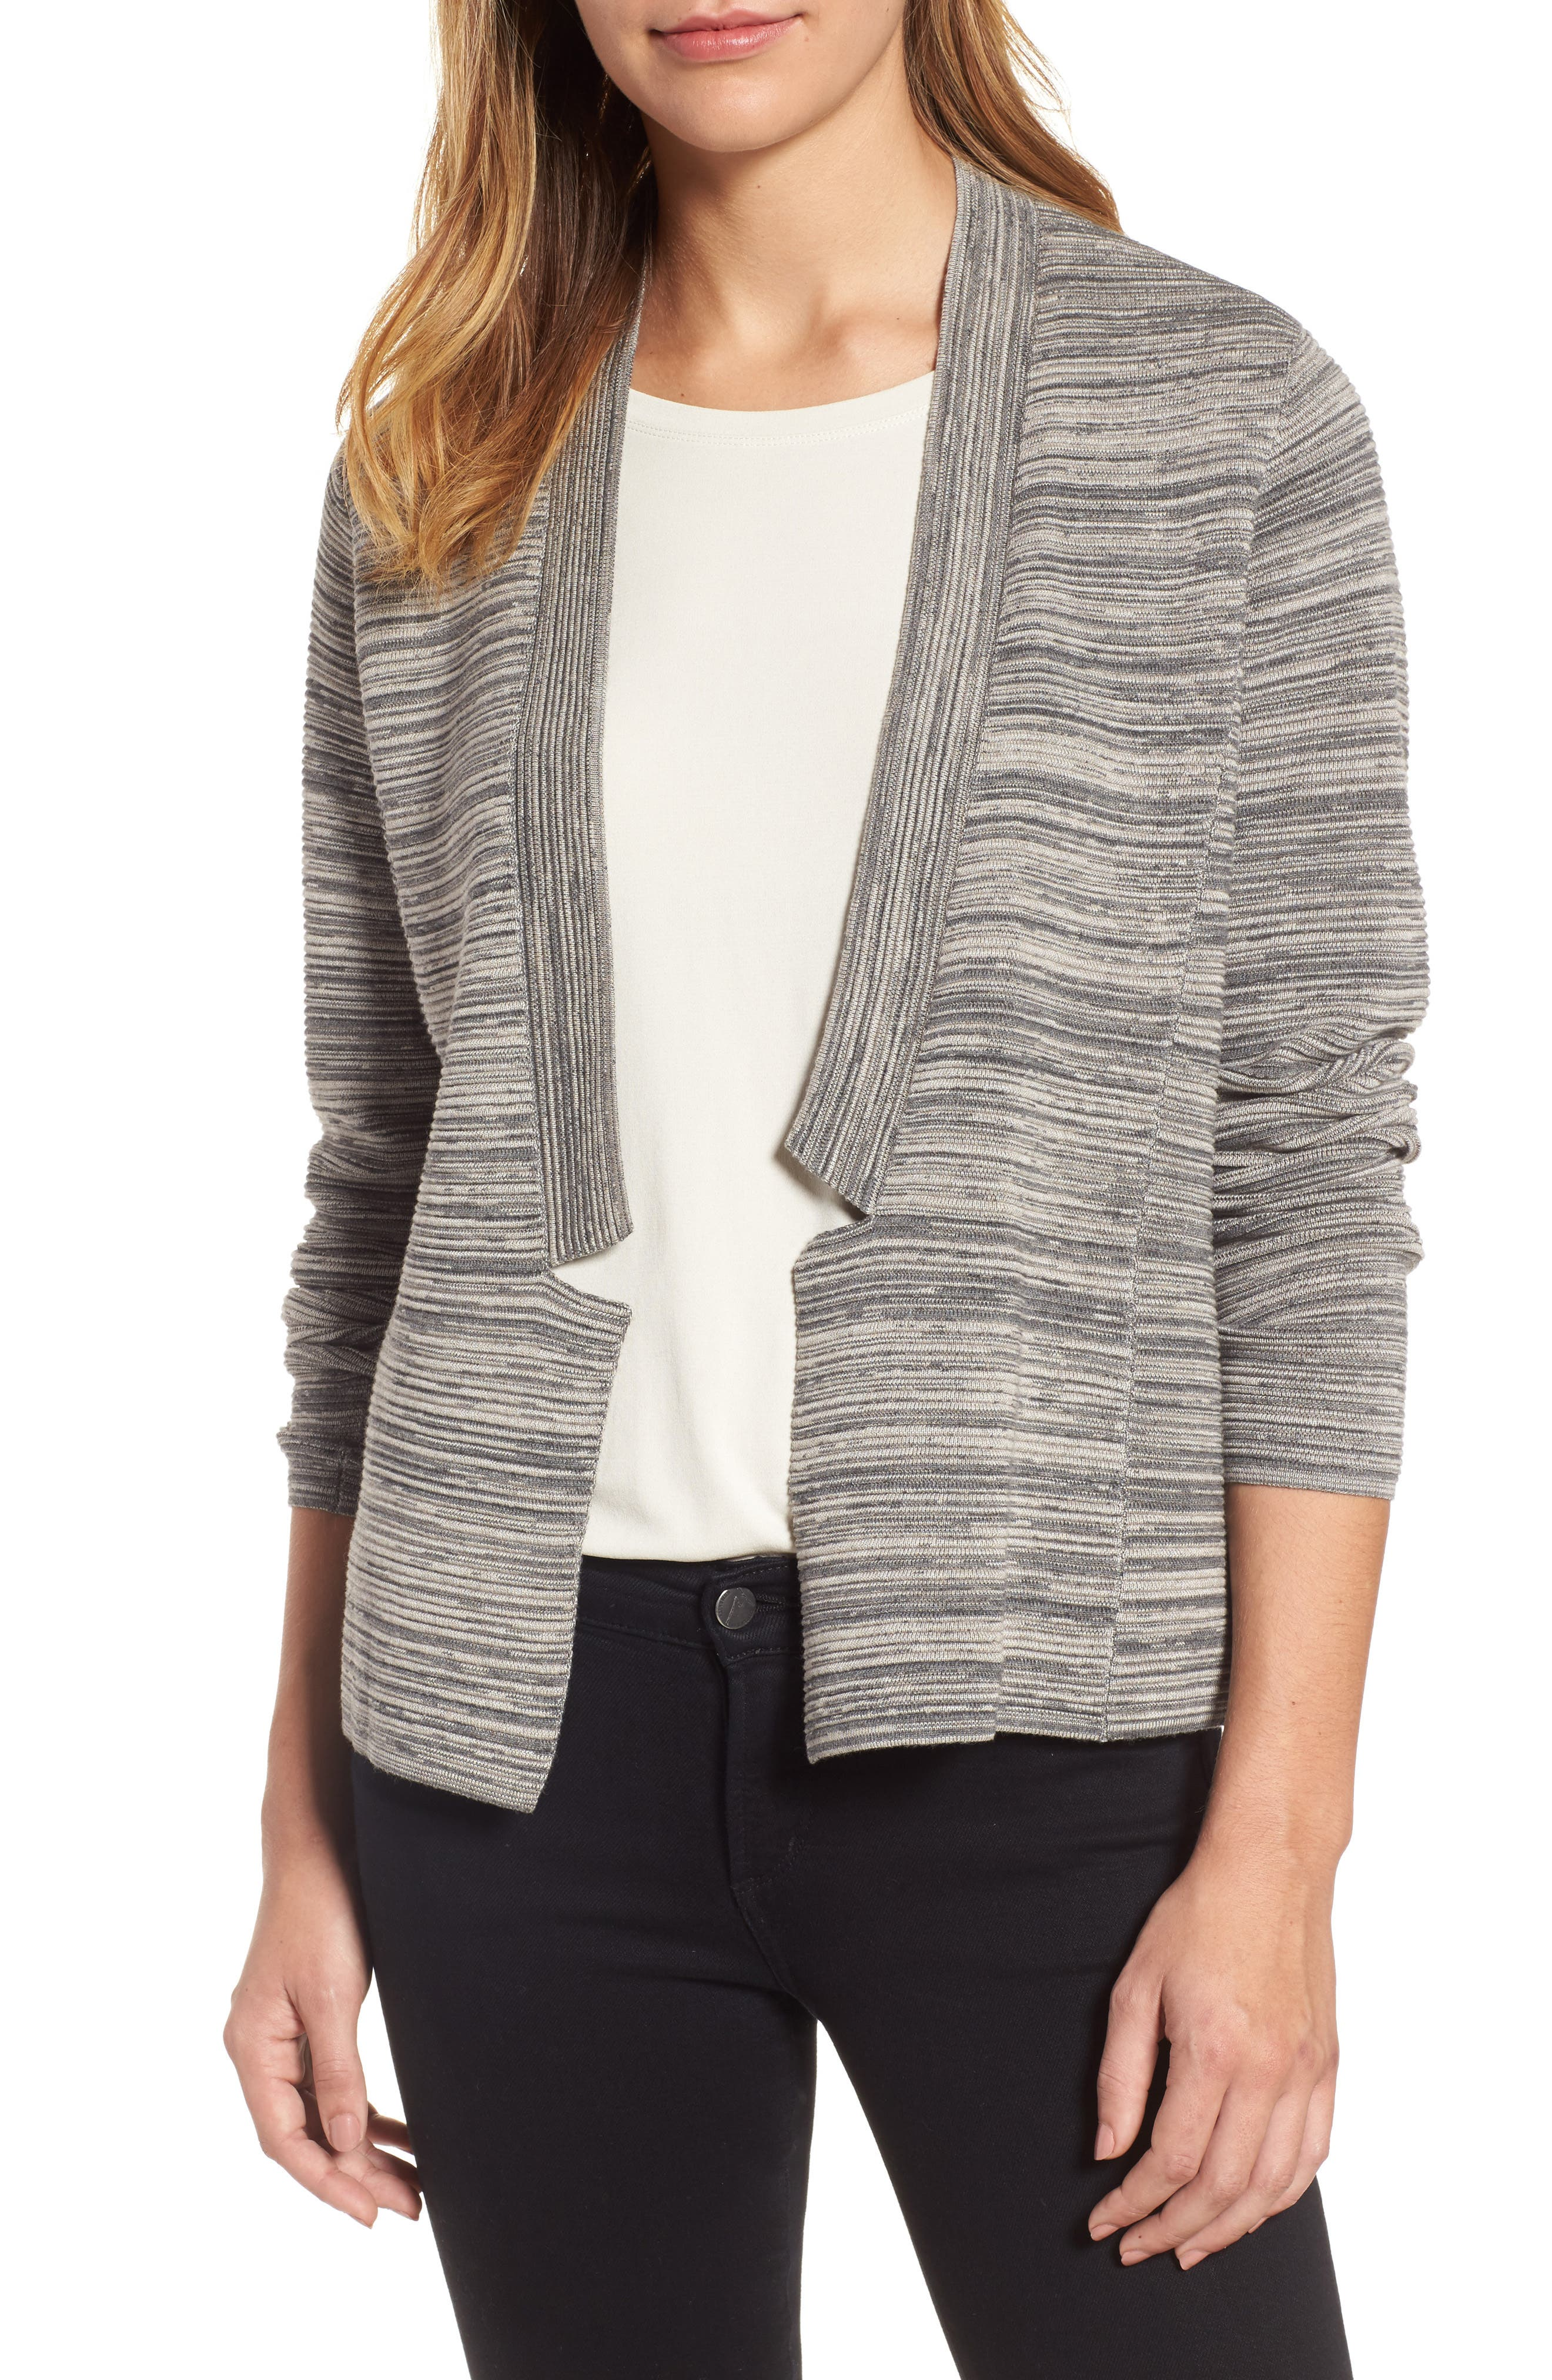 Tencel<sup>®</sup> Lyocell & Organic Cotton Cardigan,                         Main,                         color, Maple Oat